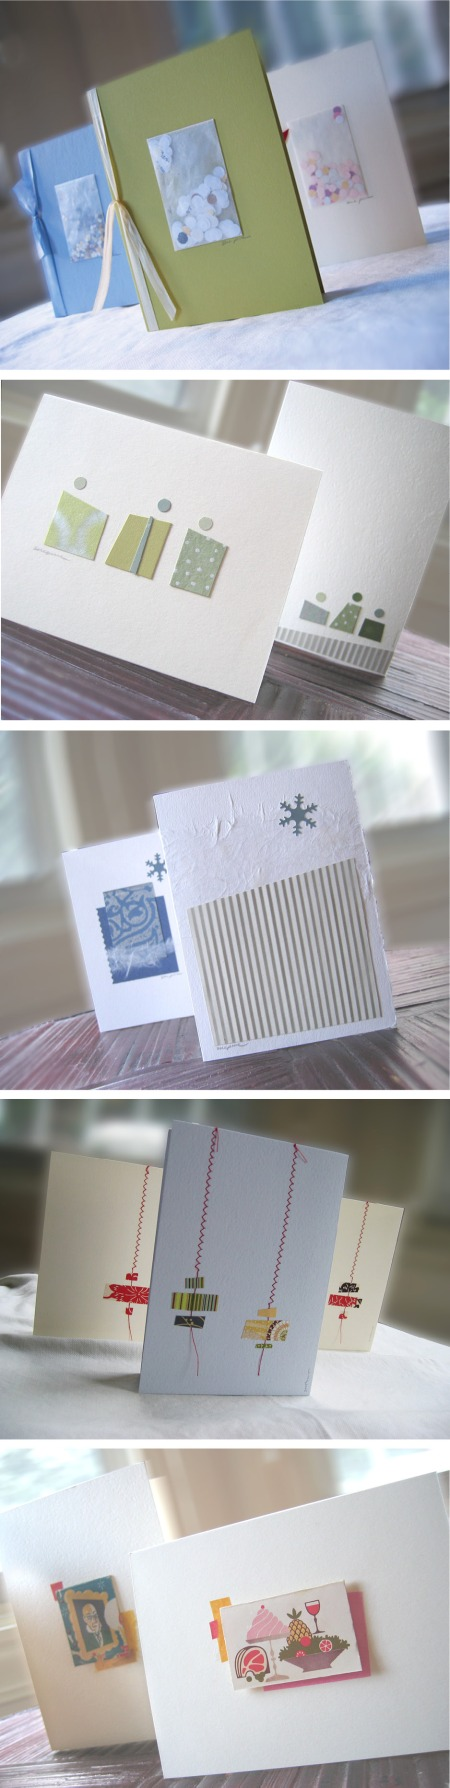 greeting-cards2